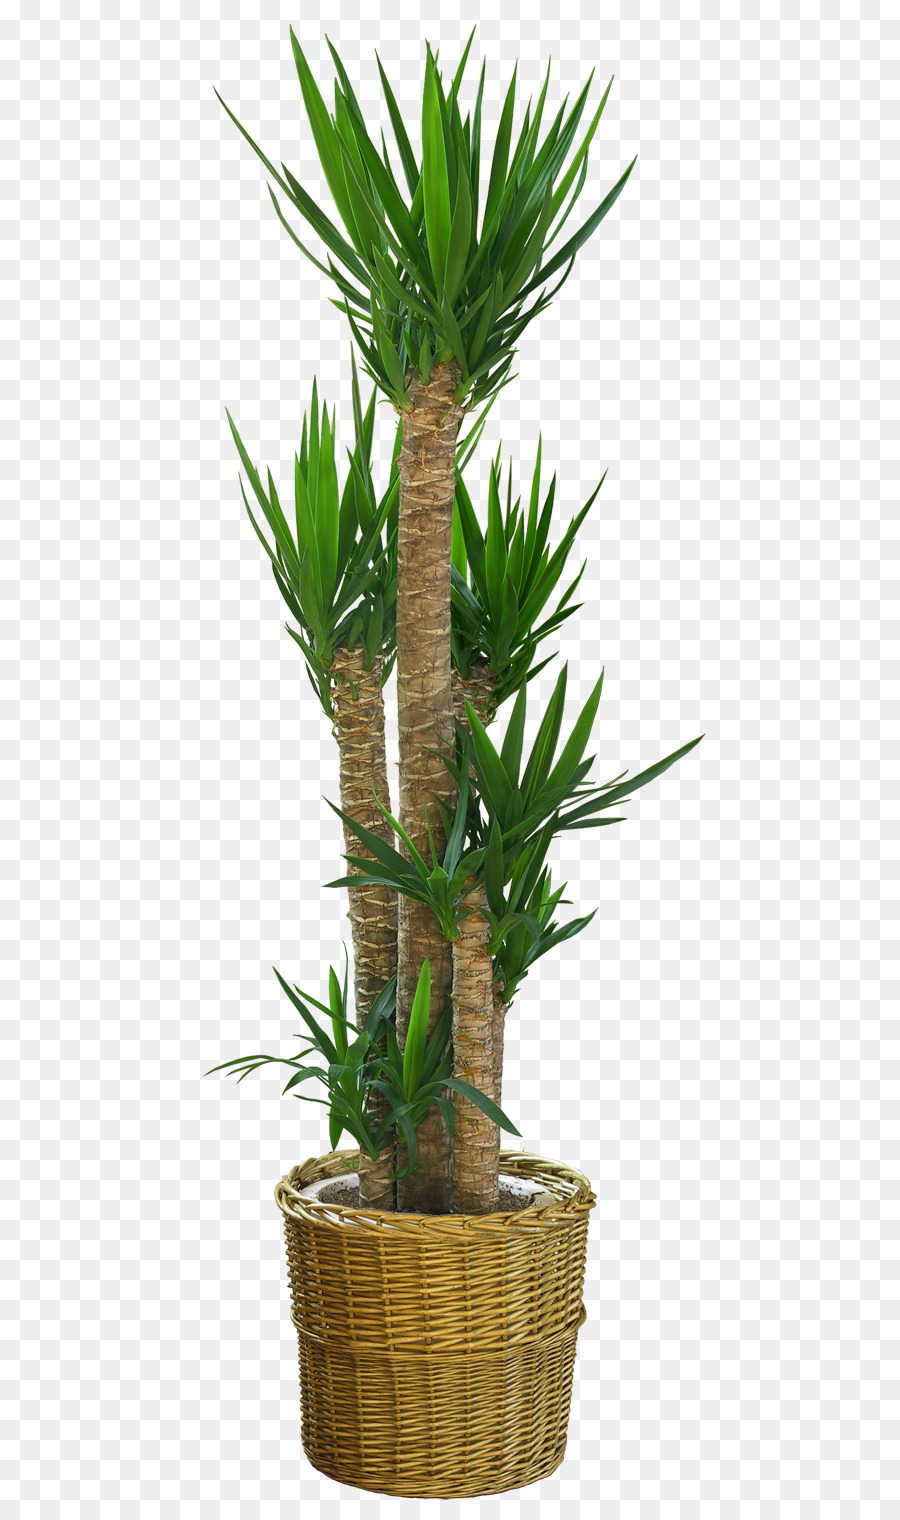 Dracaena draco clipart banner transparent Palm Tree Background png download - 600*1520 - Free Transparent ... banner transparent